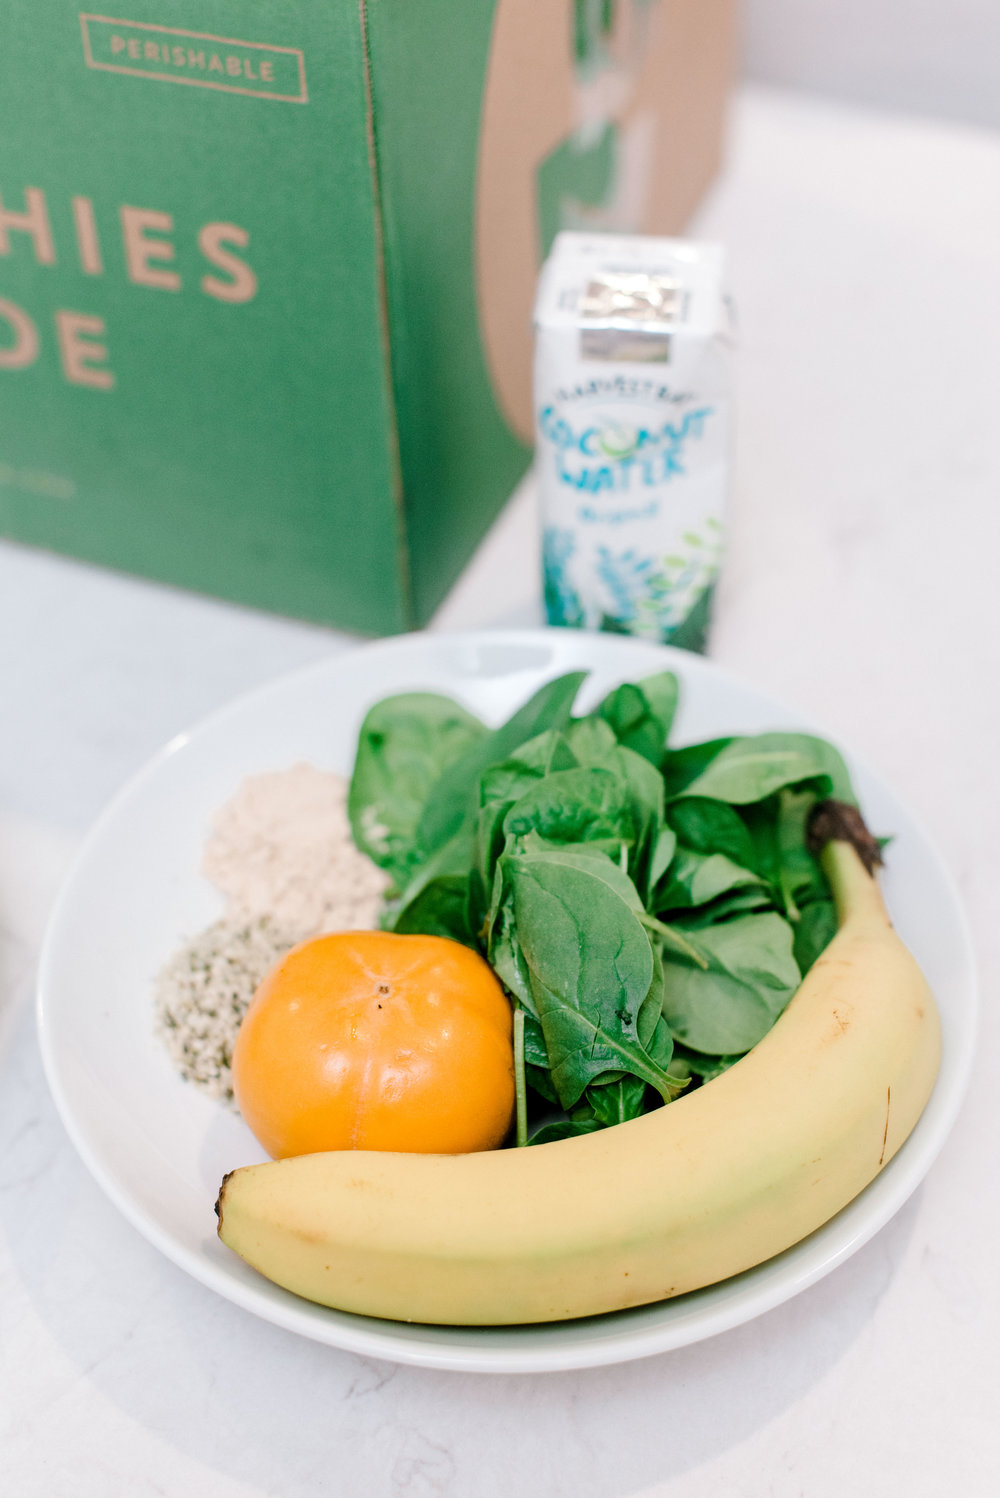 Persimmon Protein - 1 1/2 oz organic baby spinach1 organic banana, peeled1 persimmon, topped1 tbsp organic pea protein1 tbsp organic hemp seed1 cup coconut water,1 cup ice